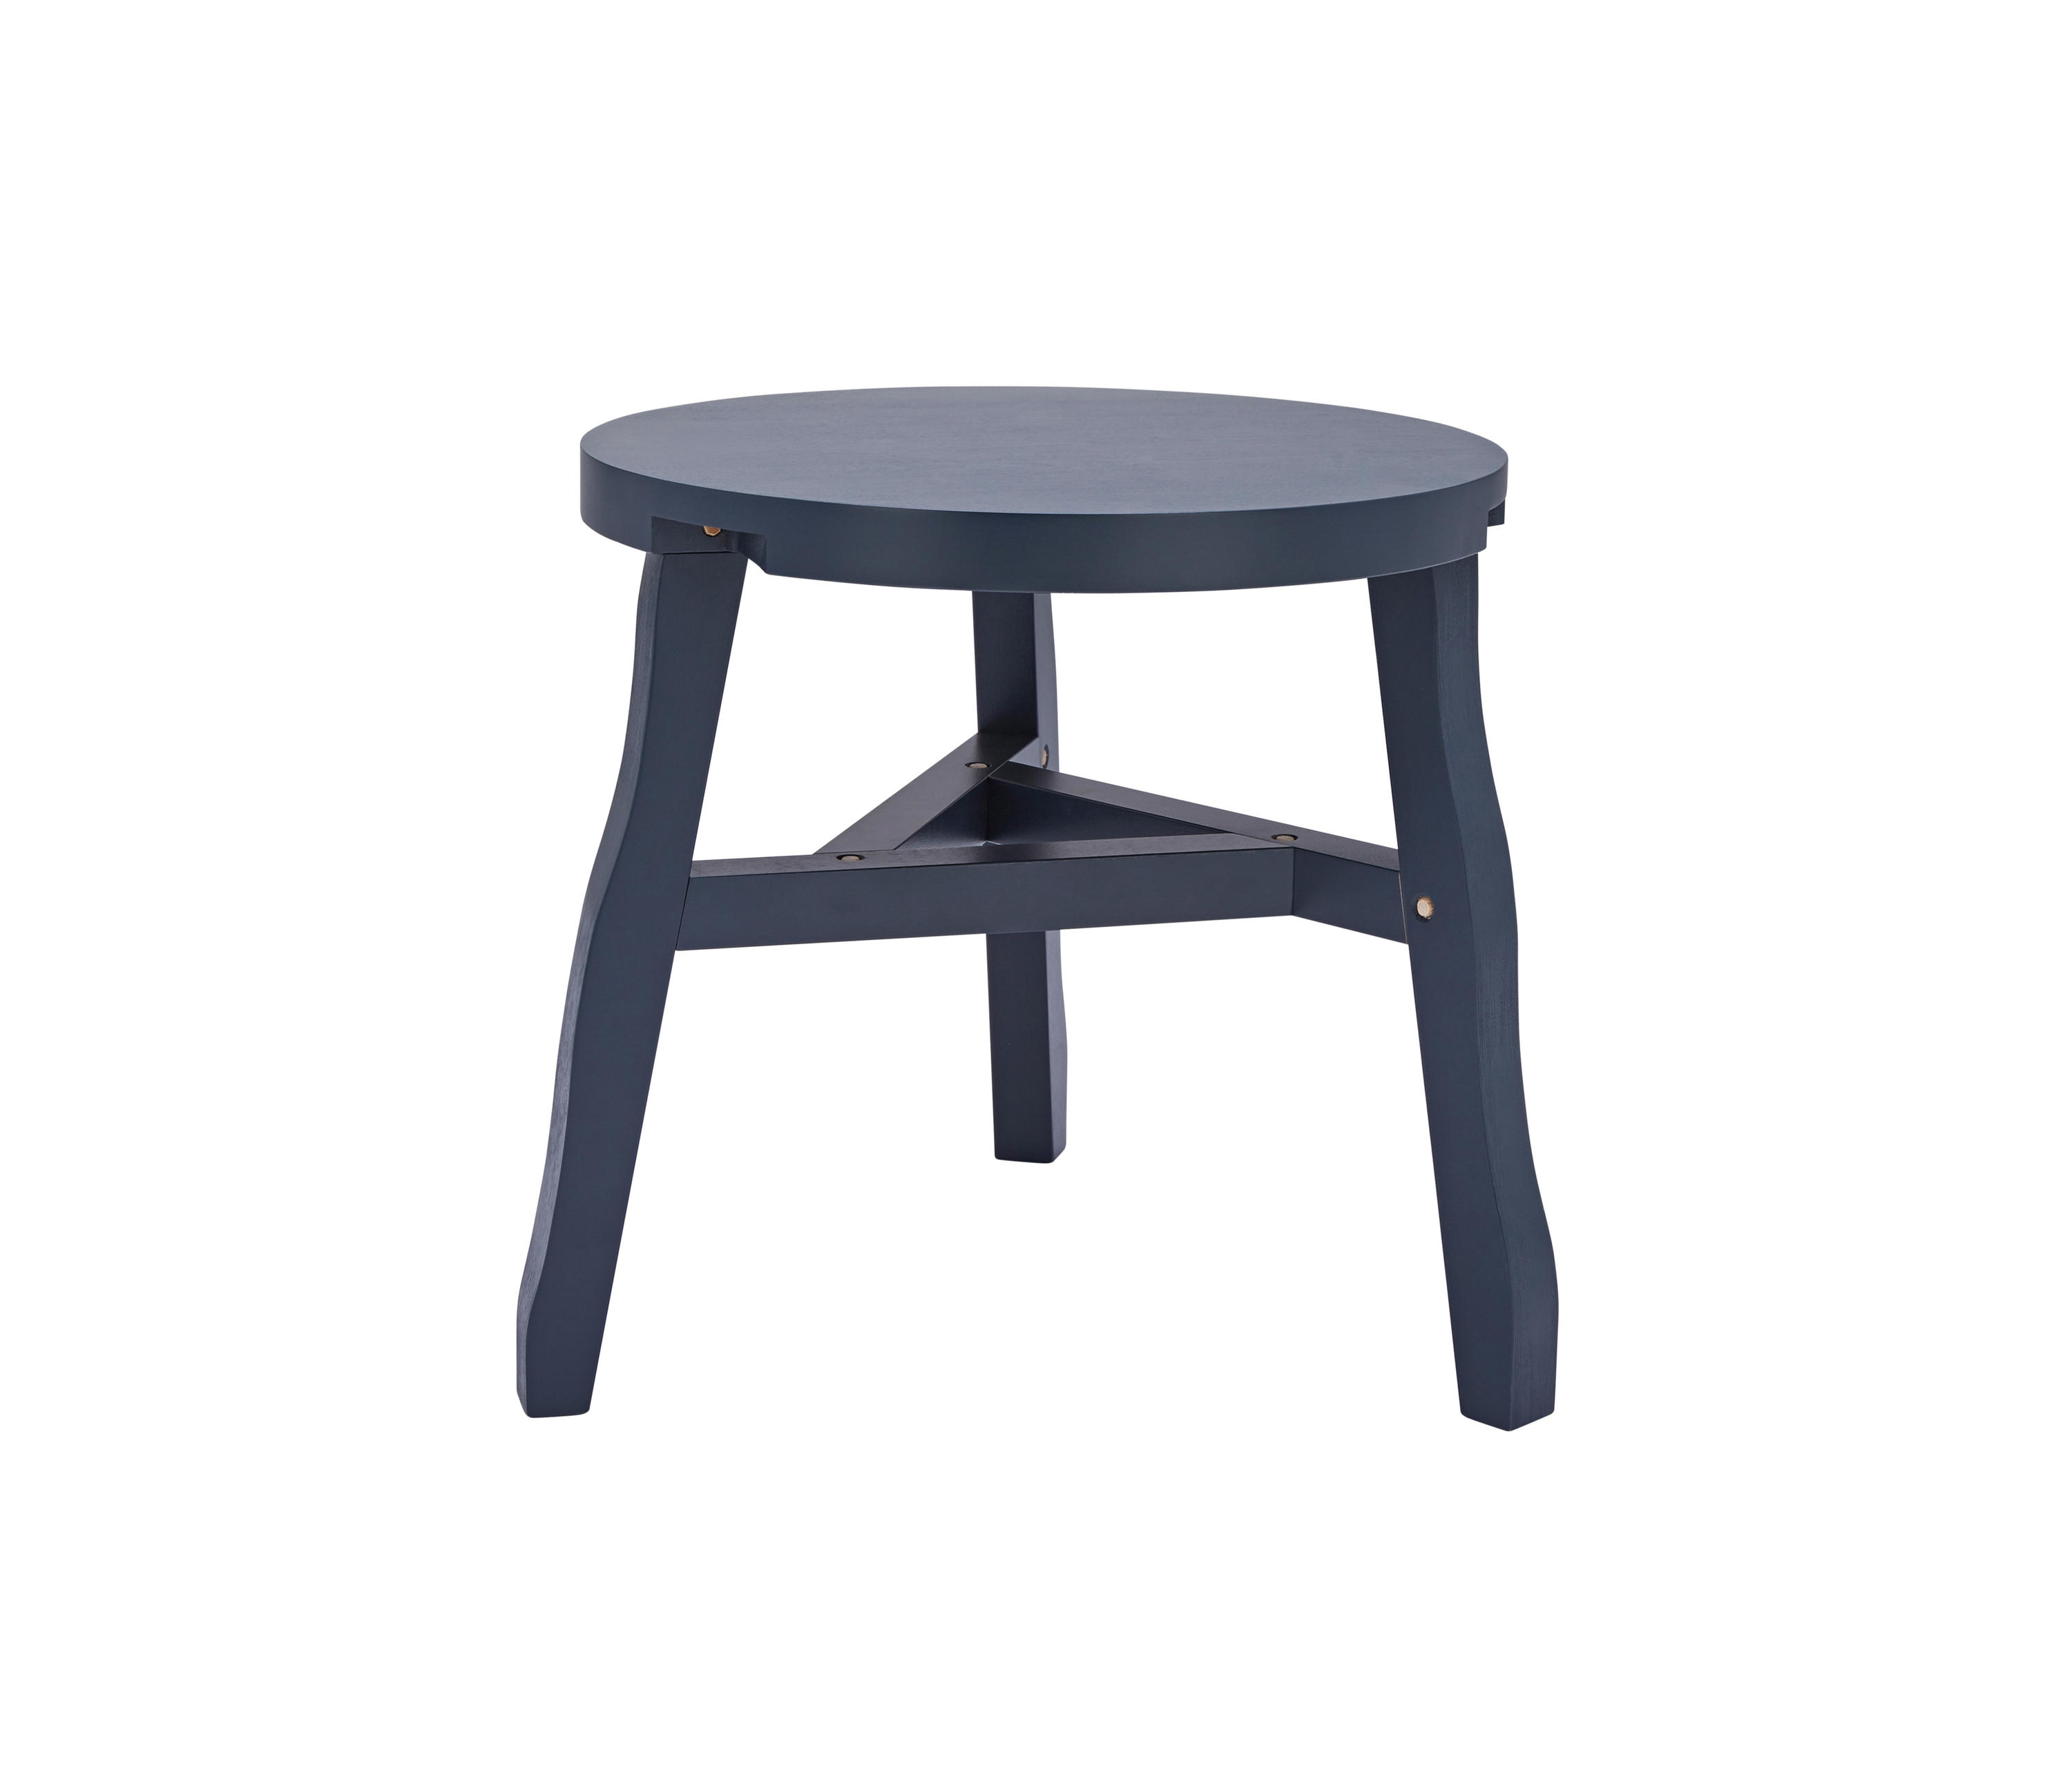 offcut side table grey side tables from tom dixon. Black Bedroom Furniture Sets. Home Design Ideas